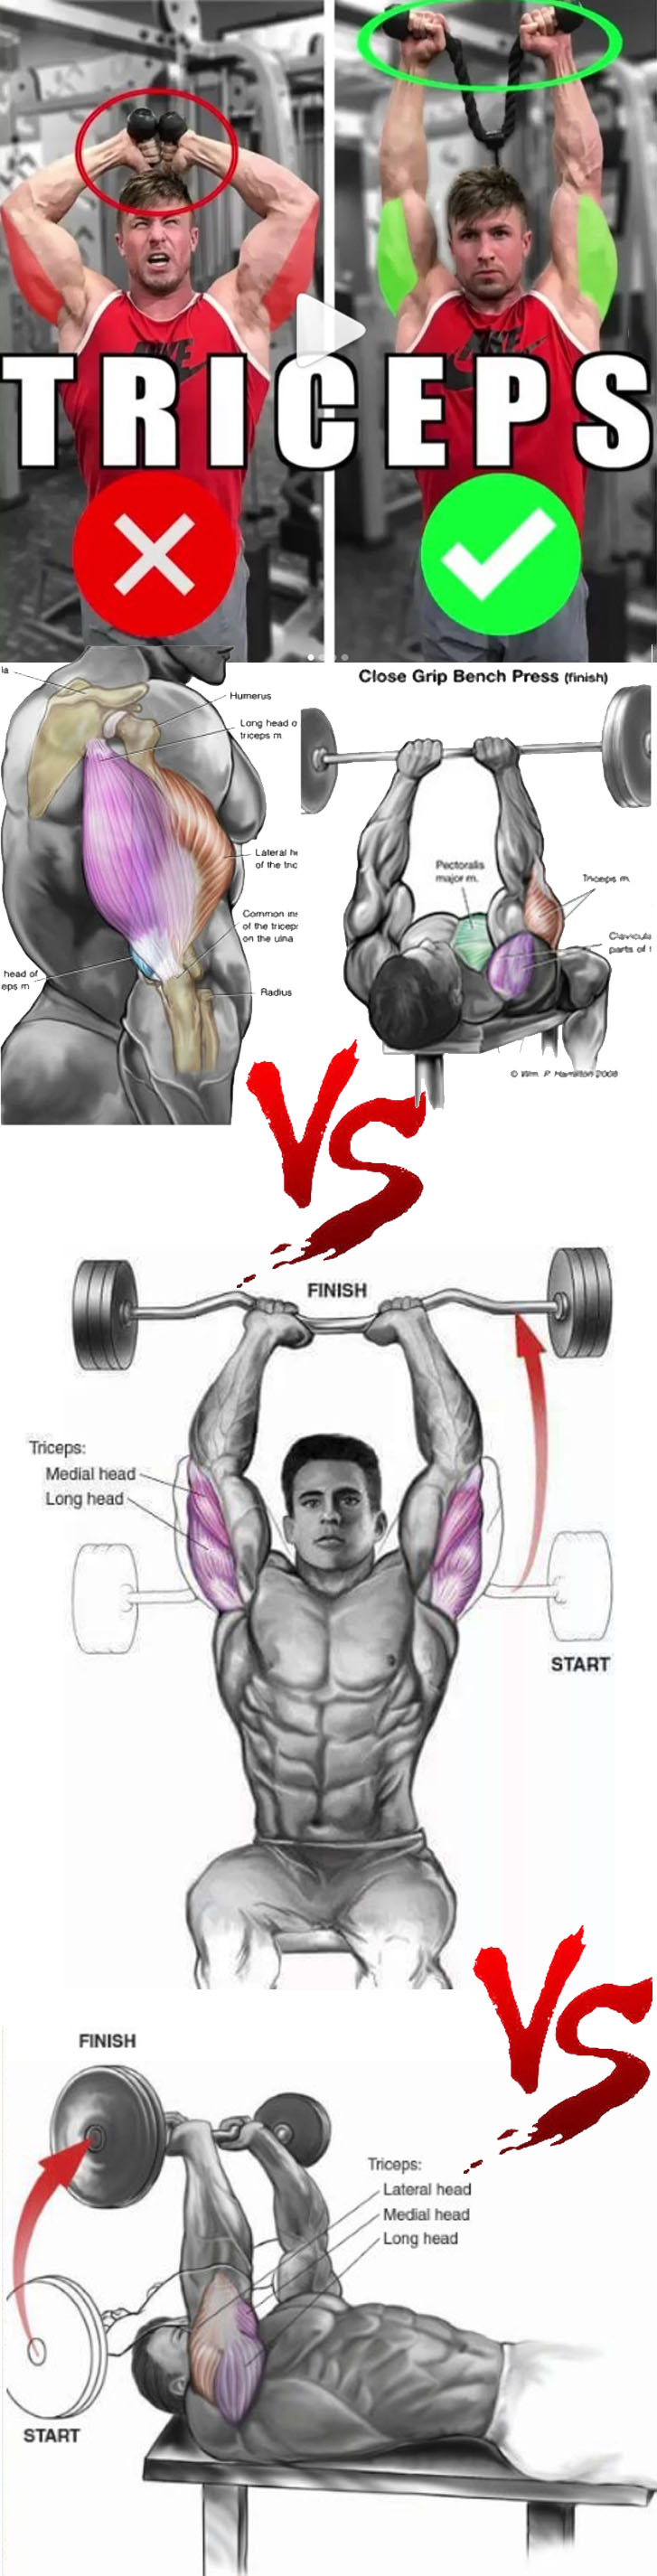 TRICEPS COMPLEX WORKOUT